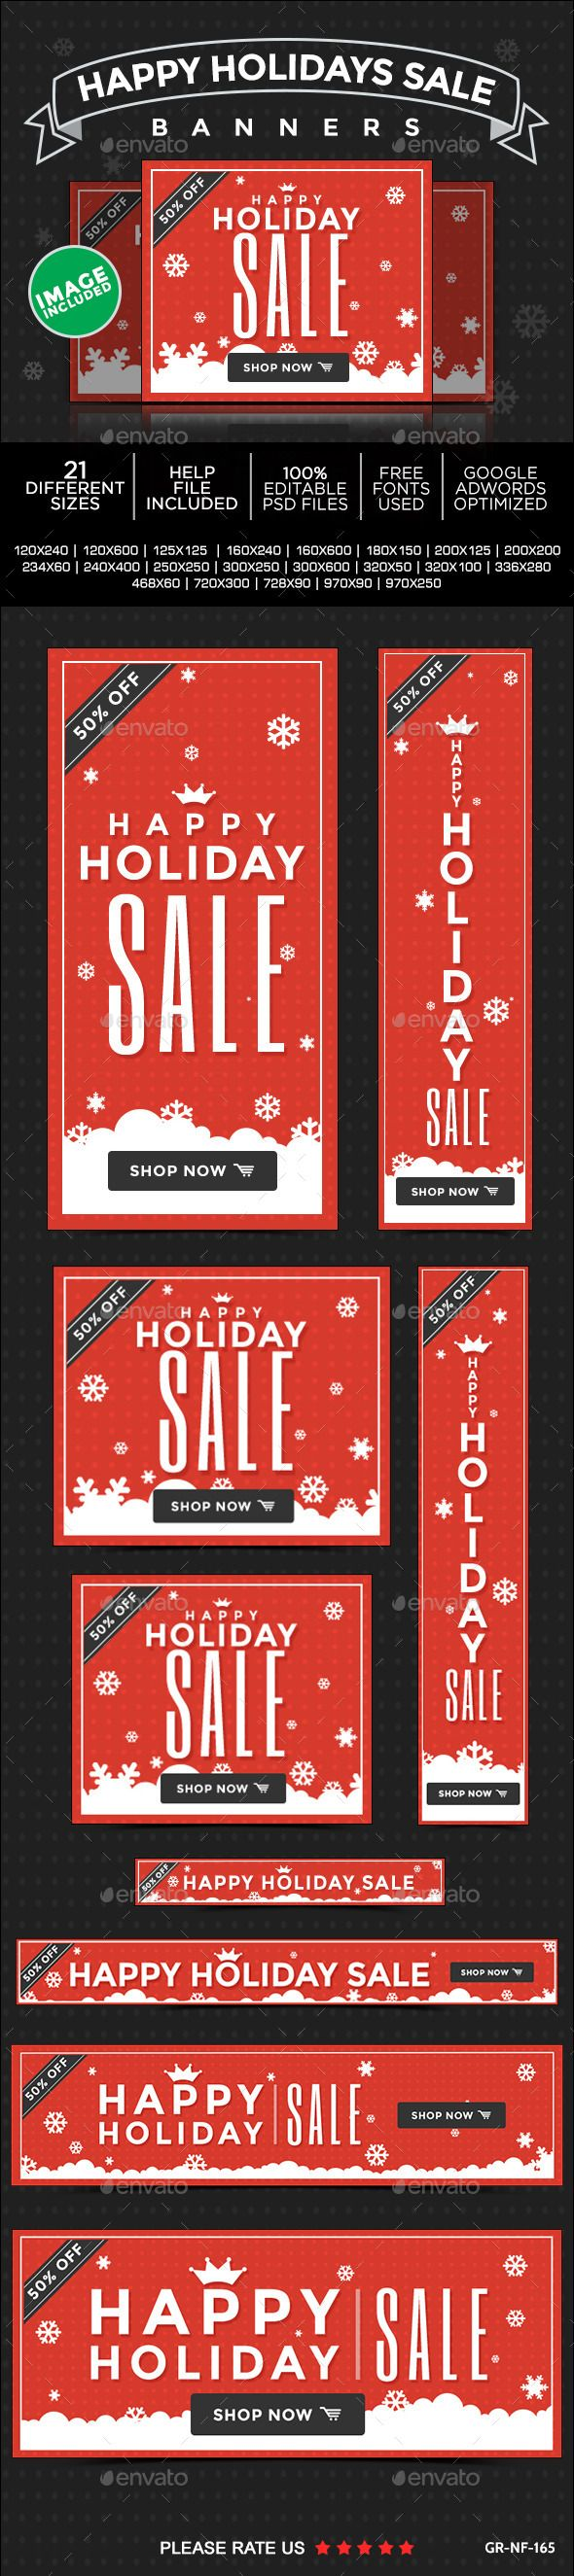 Holiday Sale Banner Set Template PSD | Buy and Download: http://graphicriver.net/item/holiday-sale-banner-set/9719747?WT.oss_phrase=&WT.oss_rank=19&WT.z_author=doto&WT.ac=search_thumb&ref=ksioks